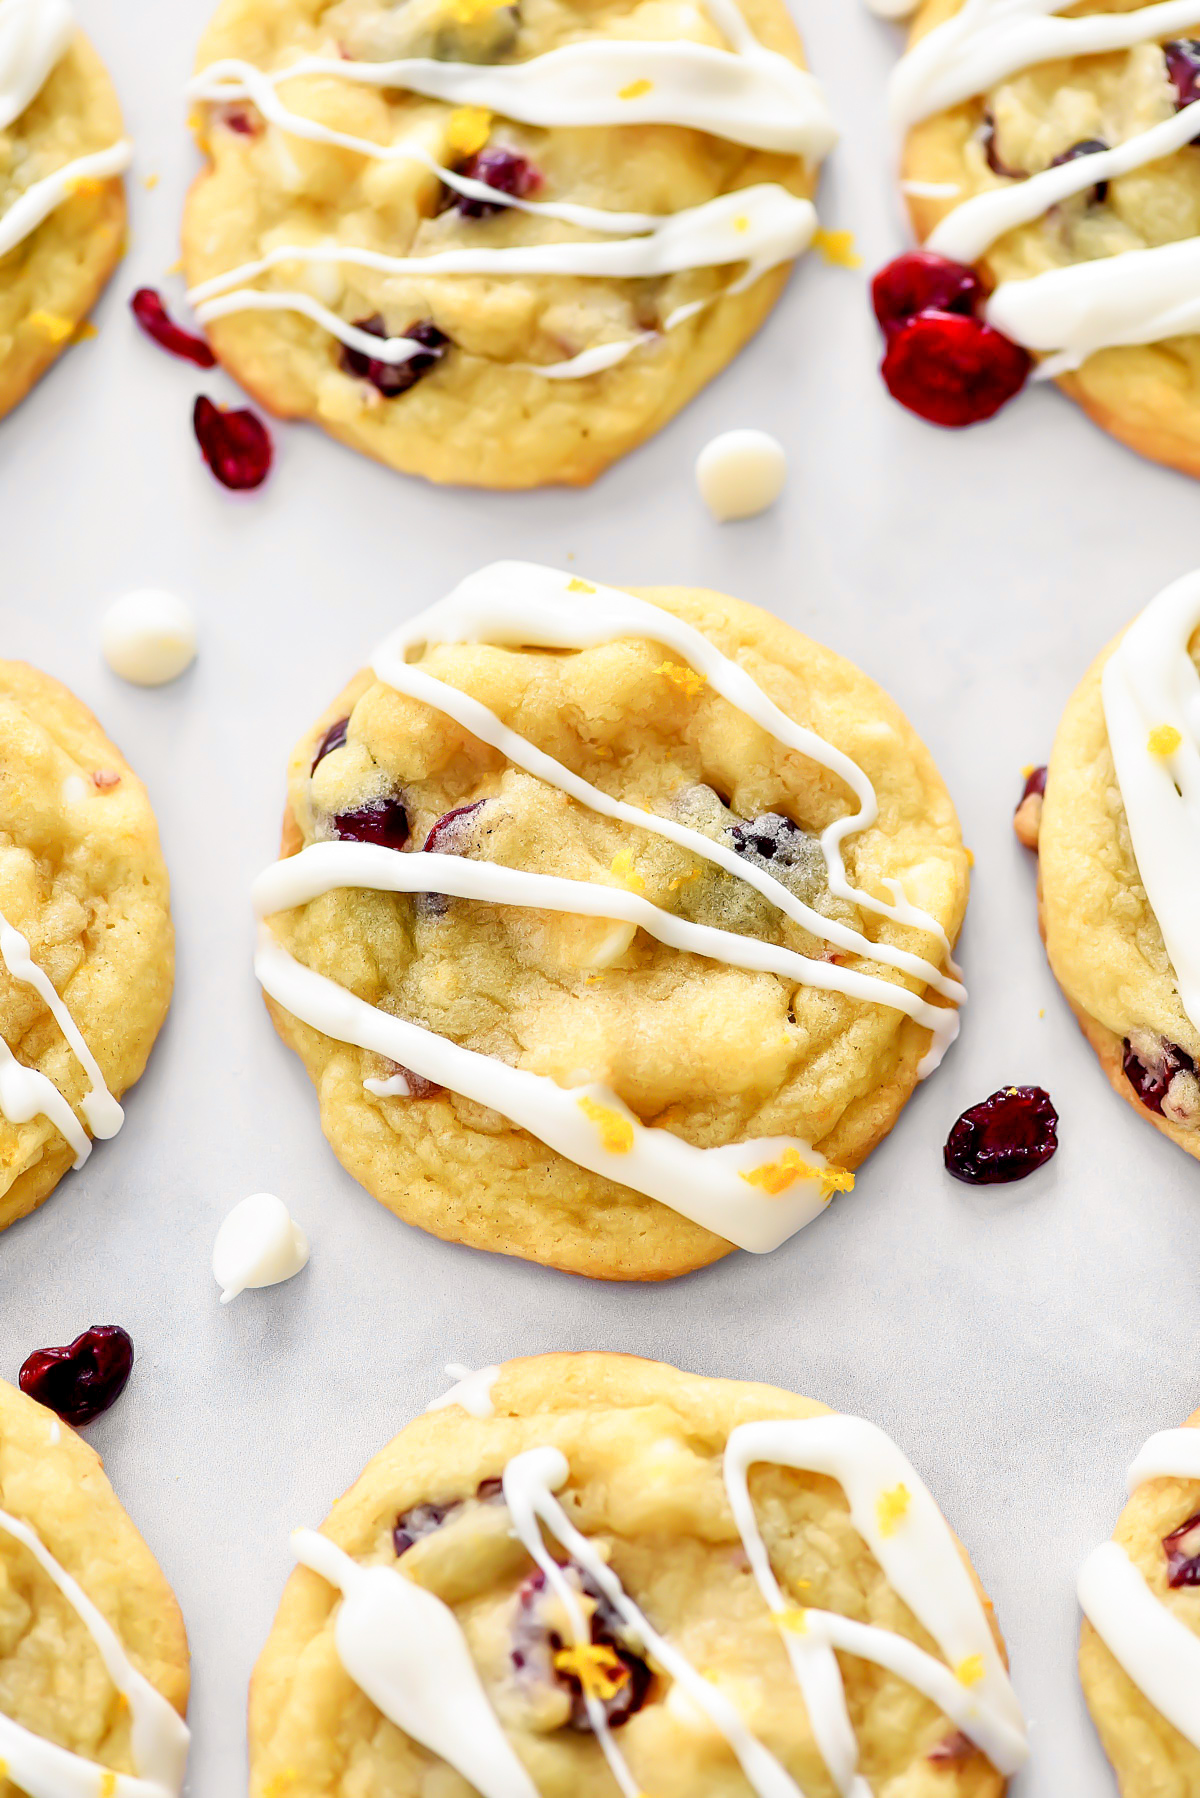 White Chocolate Cranberry Orange Cookies are sweet, soft cookies full of orange and cranberry flavors. Life-in-the-Lofthouse.com